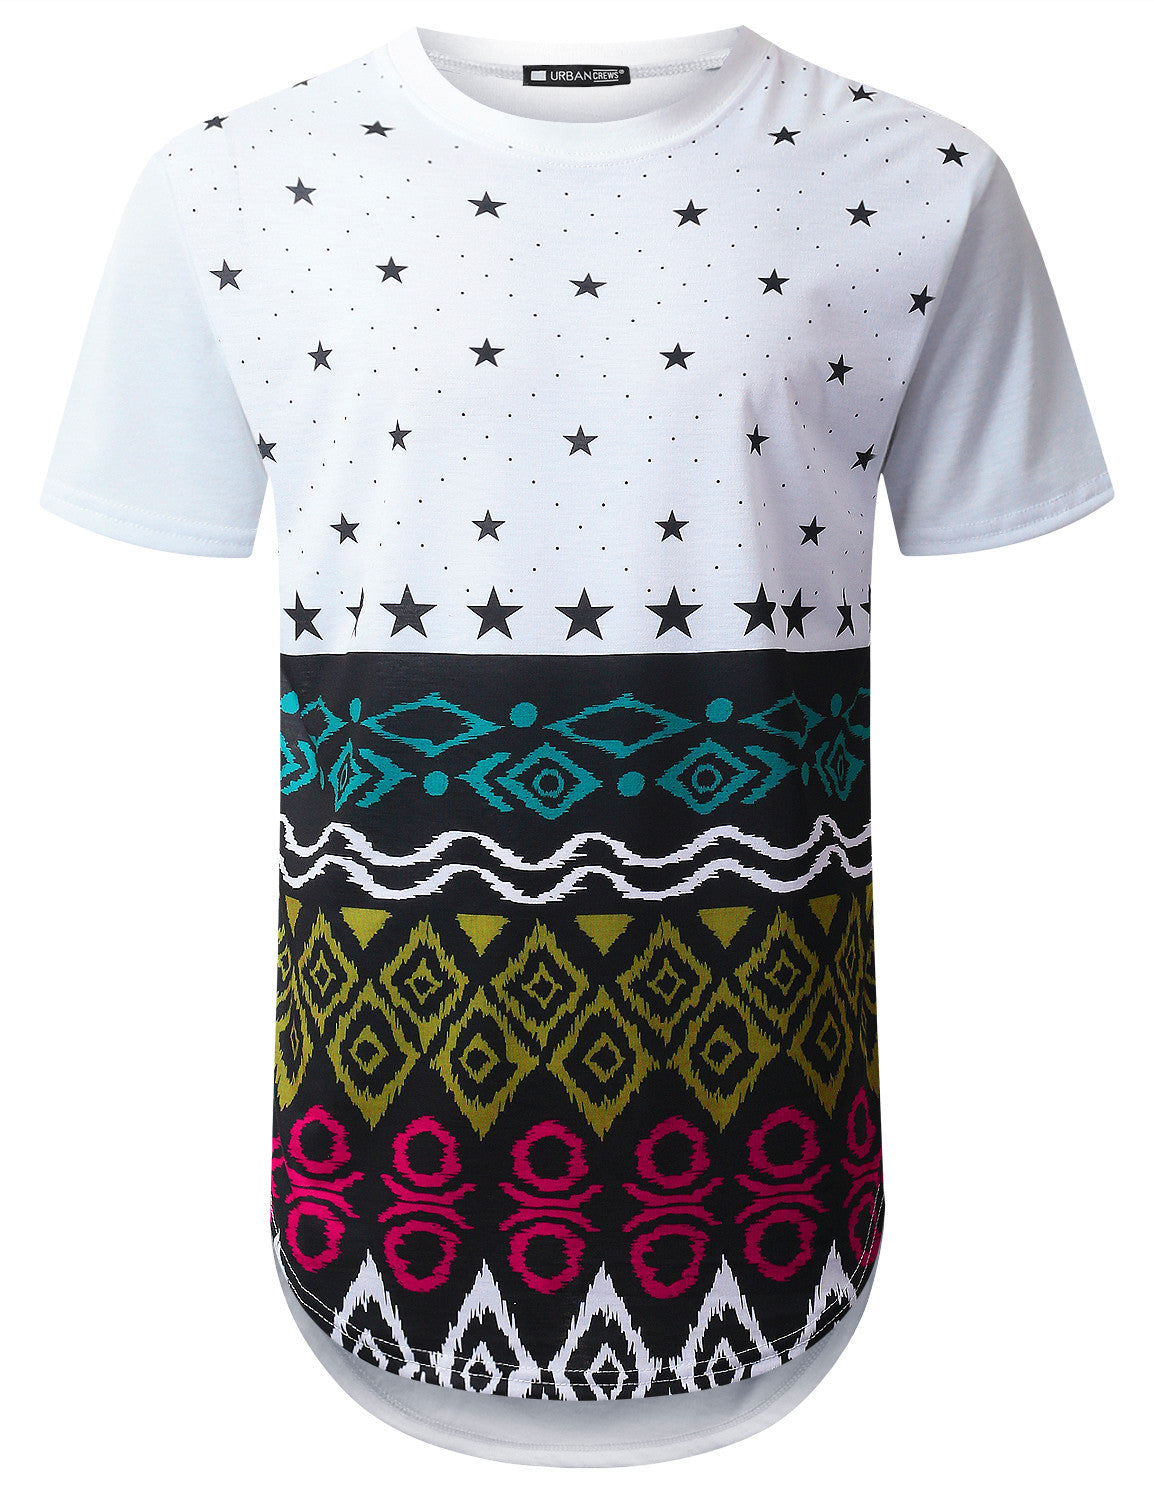 WHITE Star Aztec Longline T-shirt - URBANCREWS